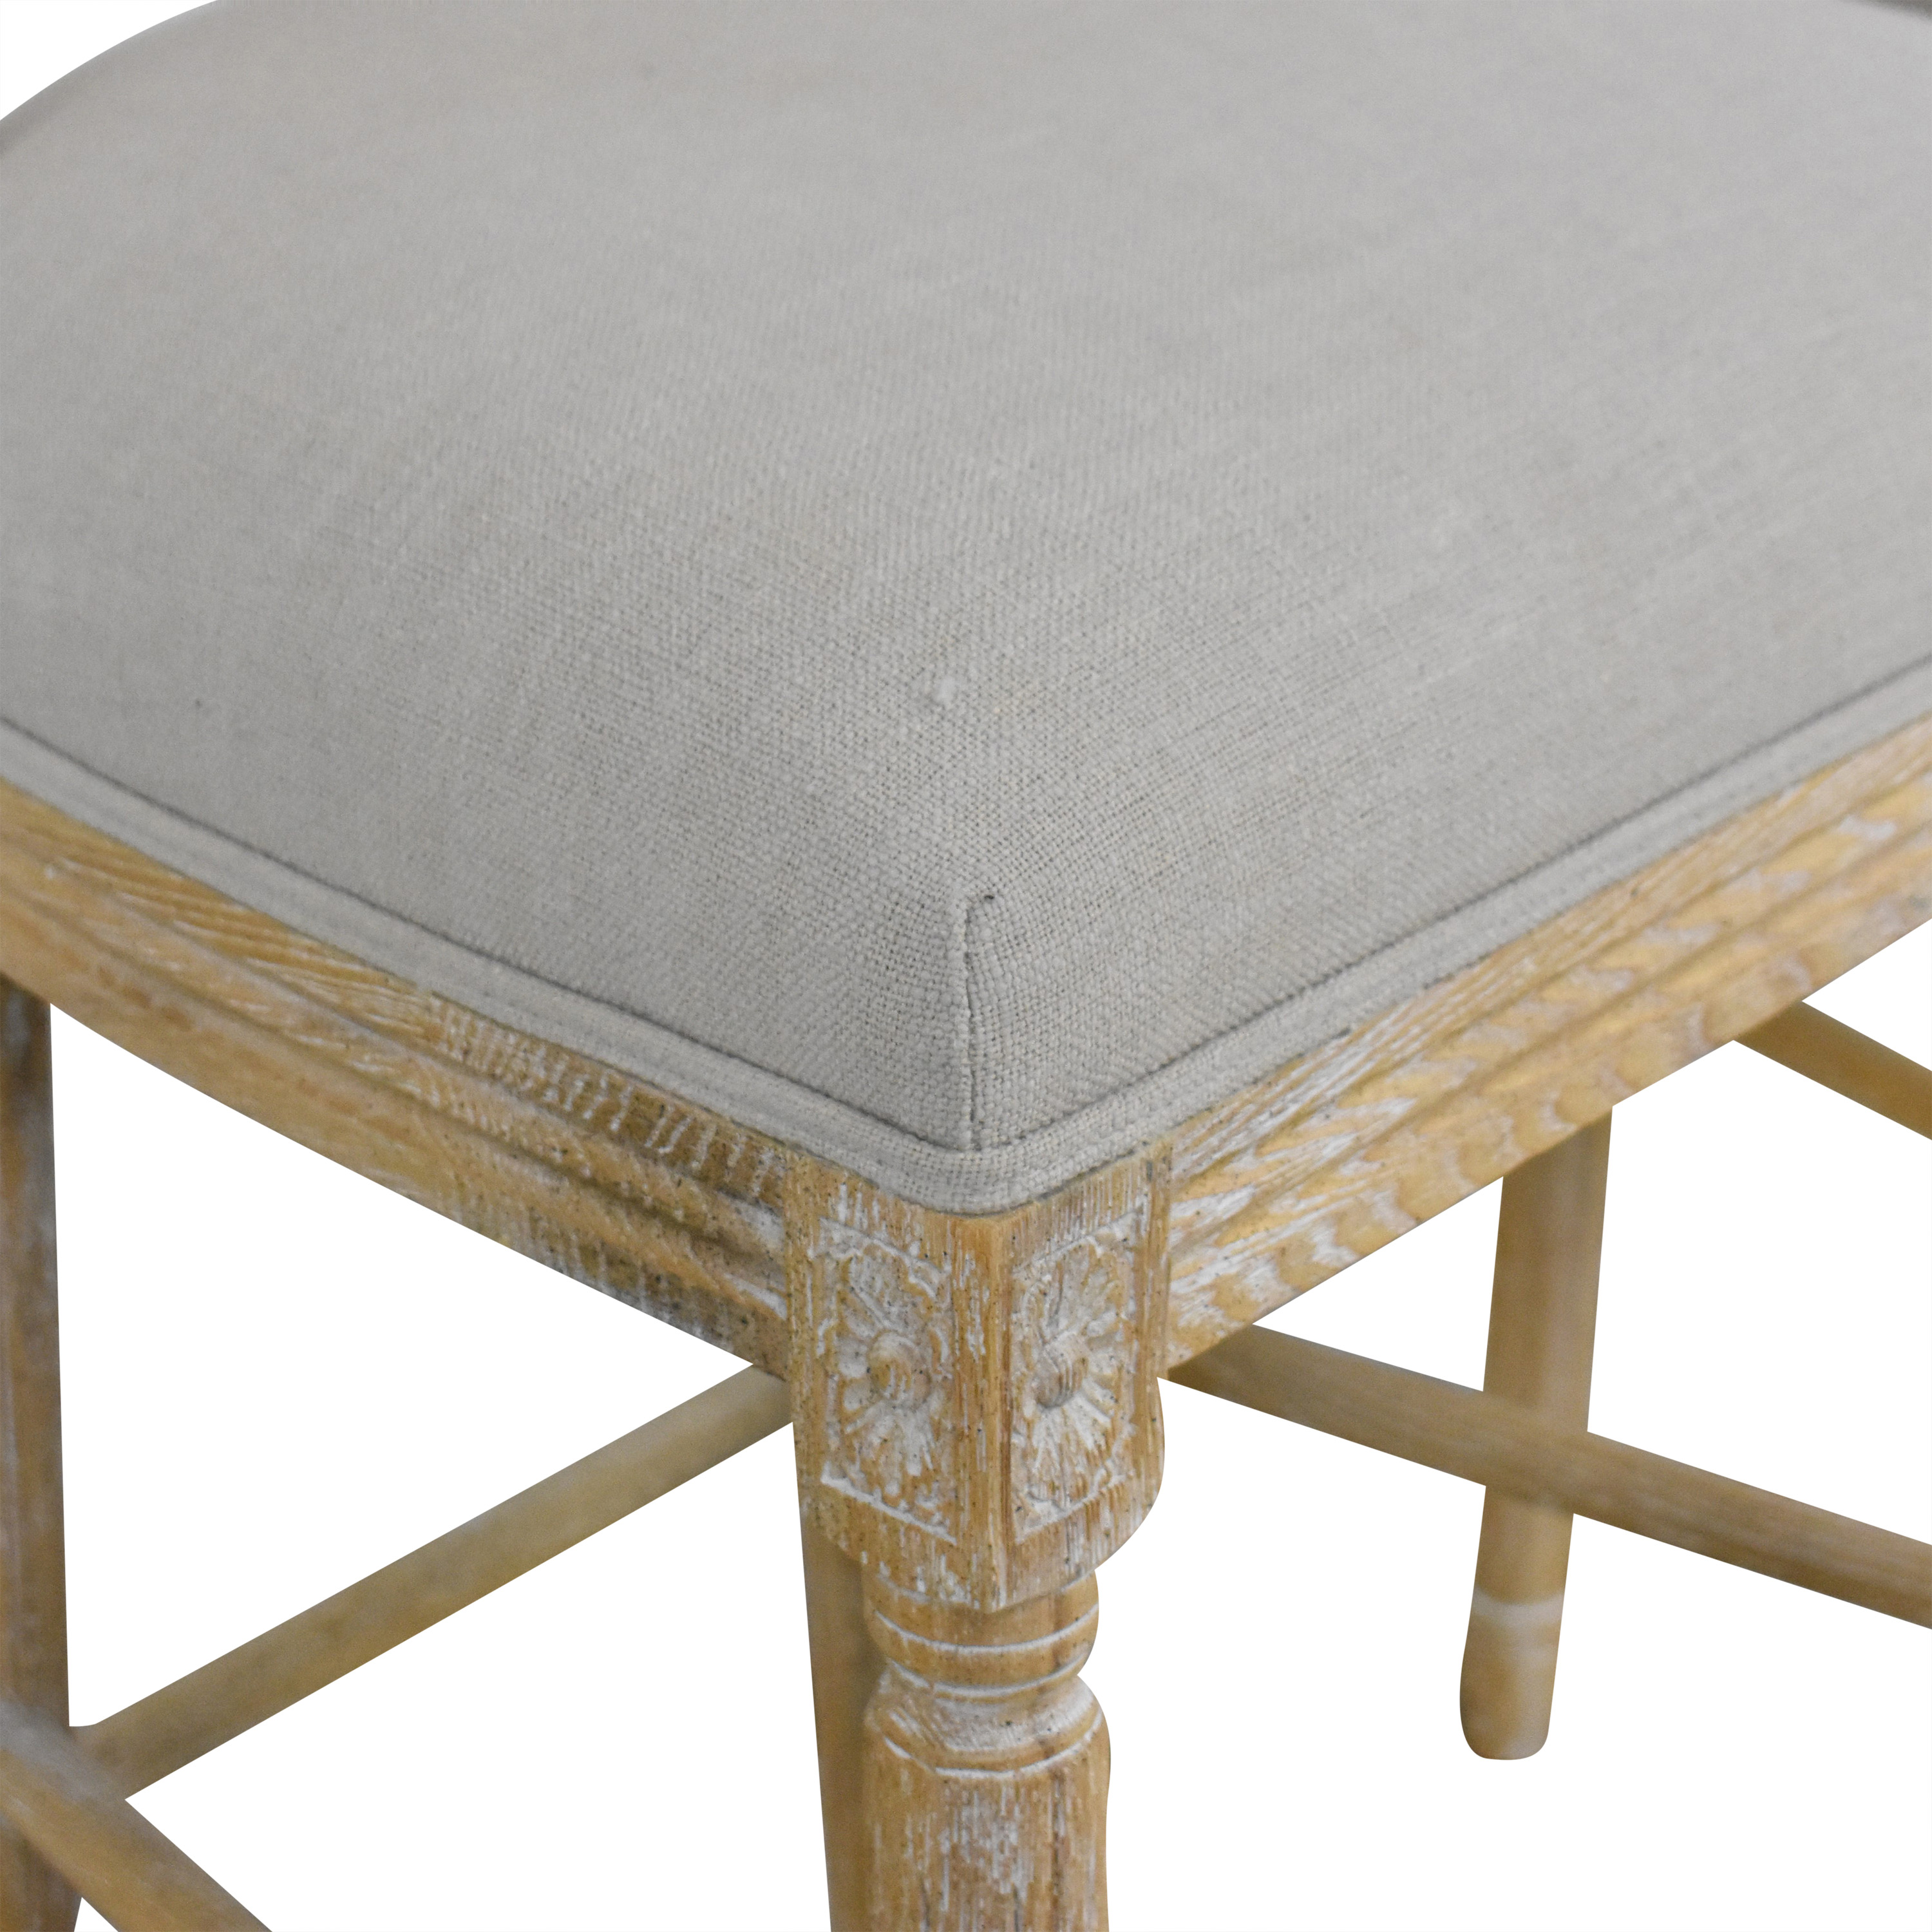 Wisteria Wisteria Upholstered Bar Stools dimensions